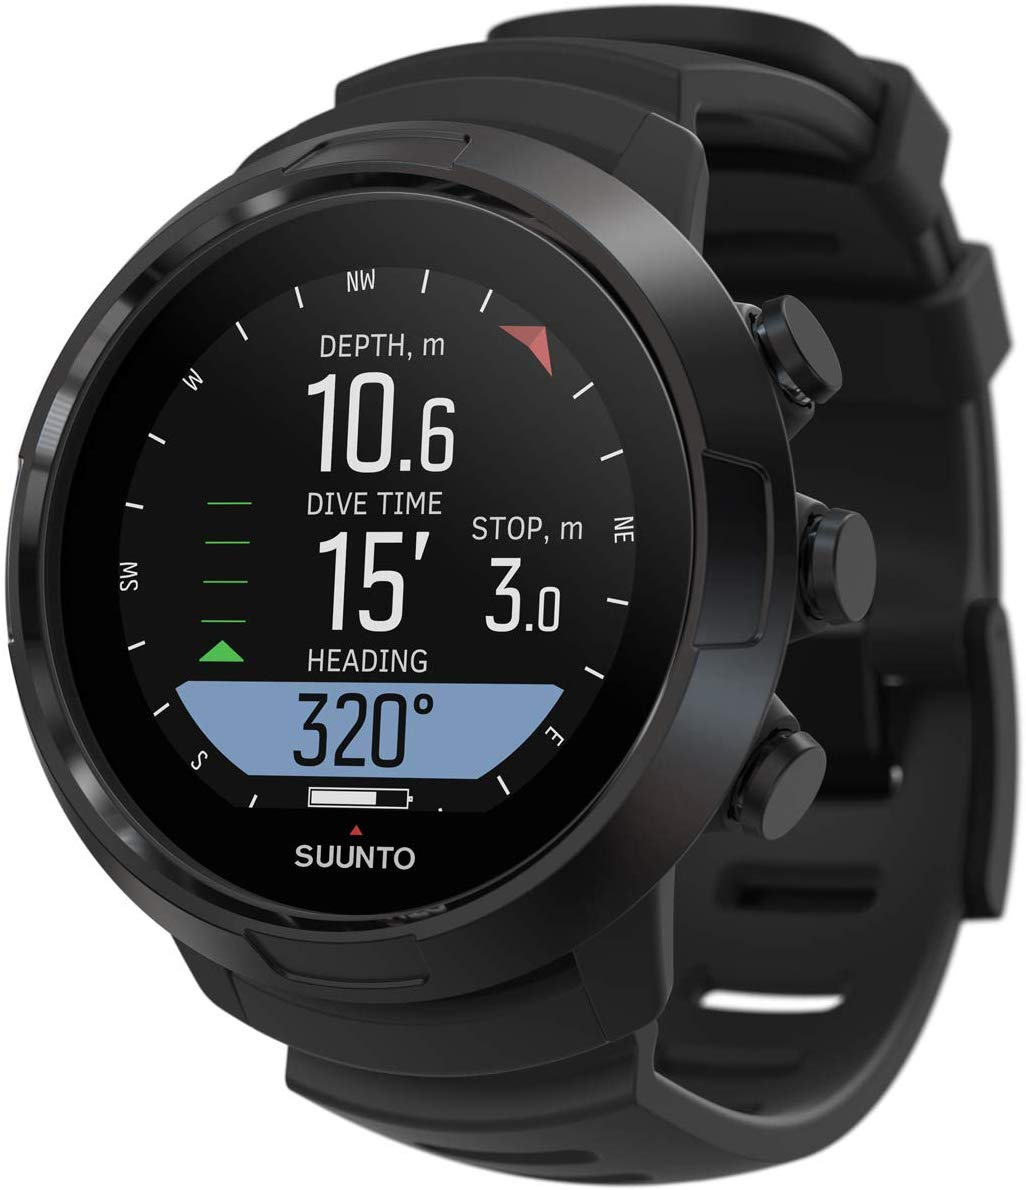 SUUNTO D5 Scuba Diving Wrist Computer with USB Cable